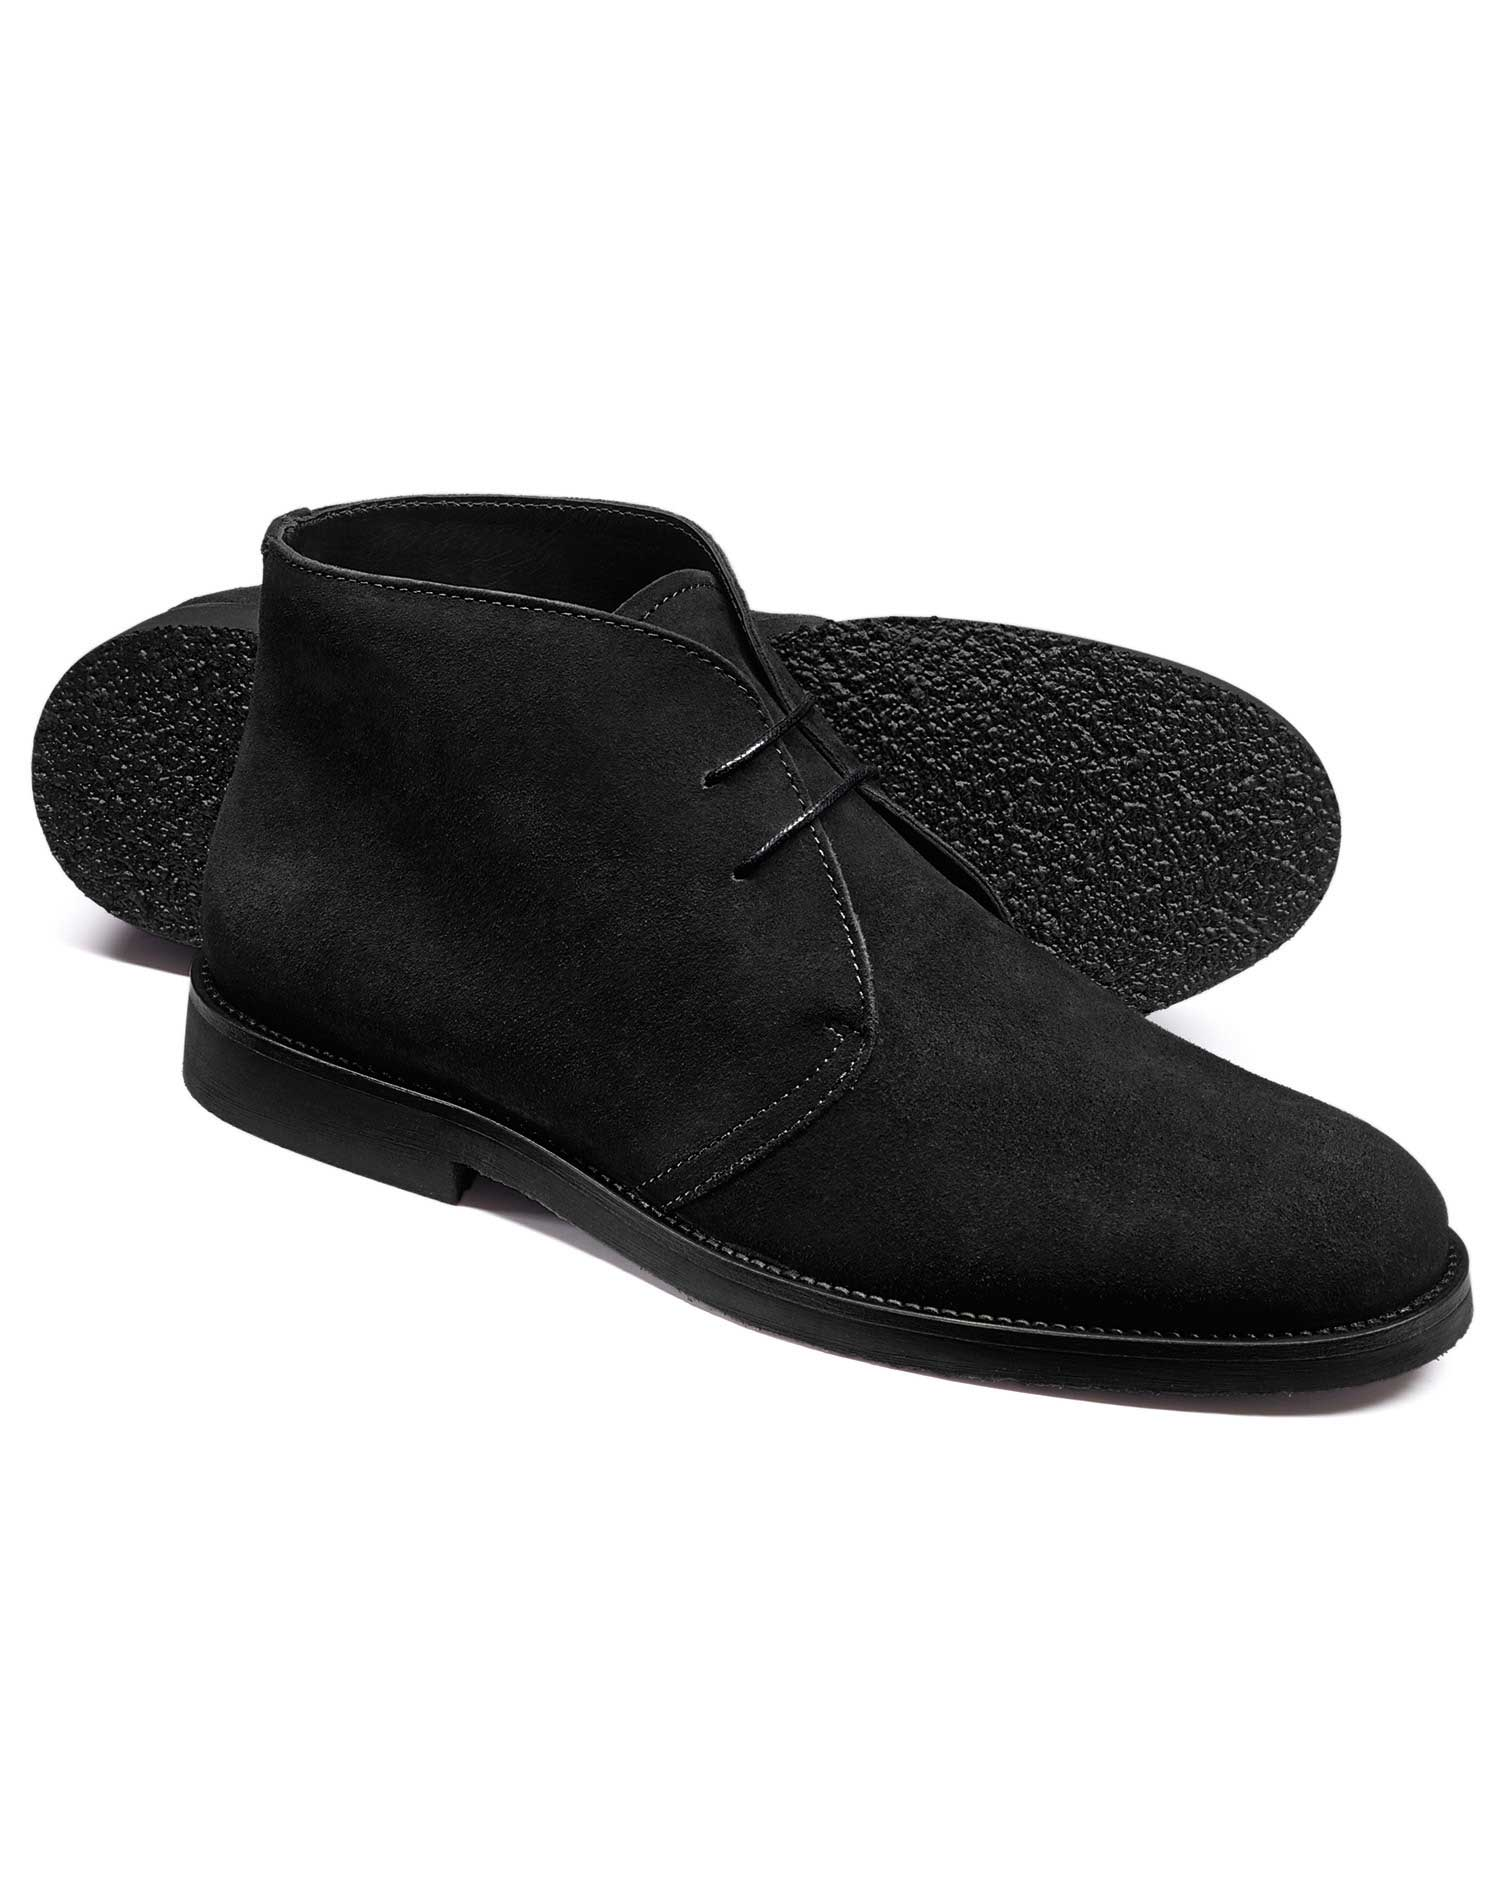 Black Suede Desert Boots Size 7 R by Charles Tyrwhitt